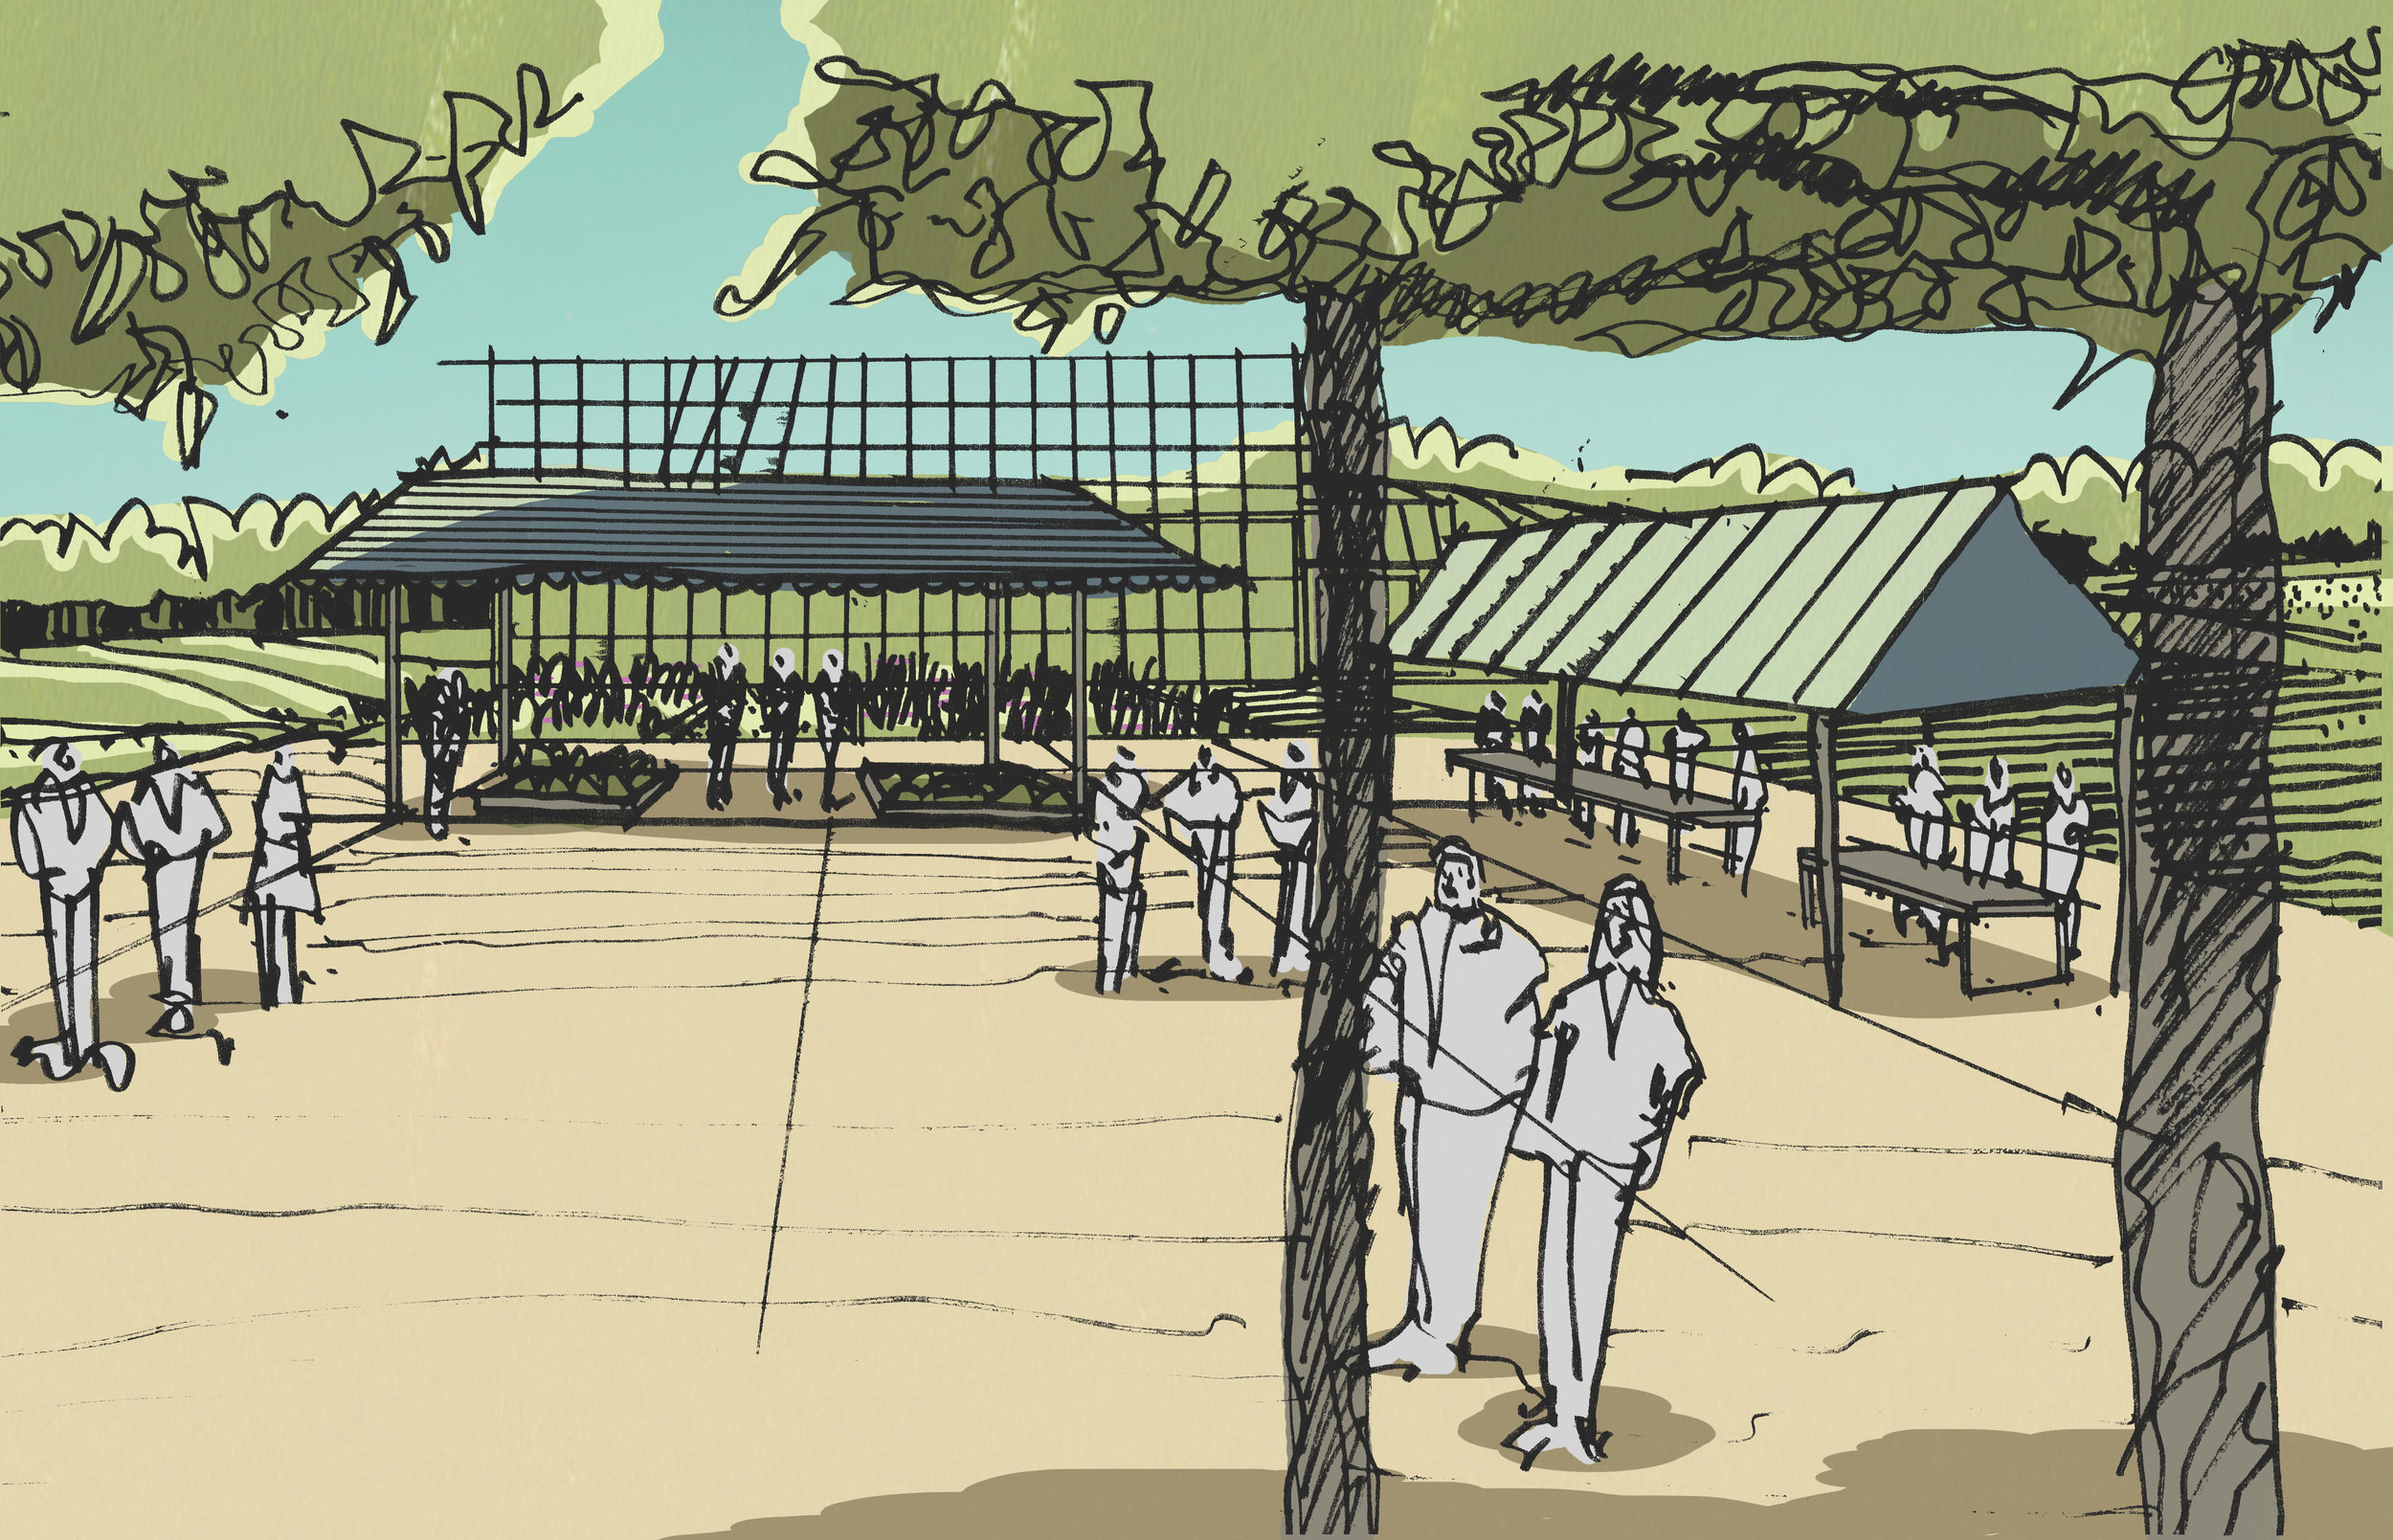 Conceptual drawing of market area.